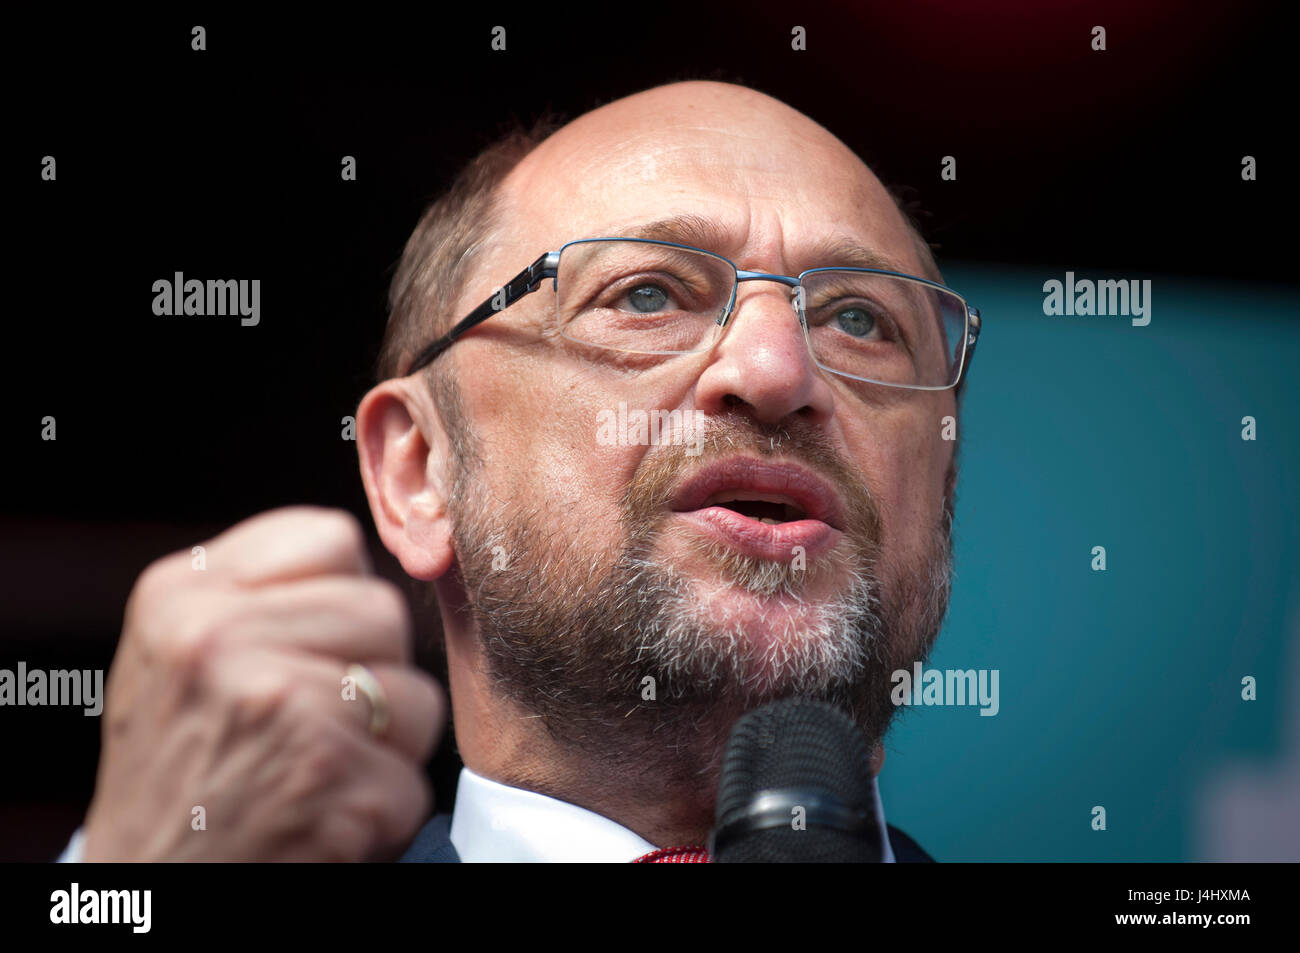 Martin Schulz leader of the SPD in Germany speaking at a party rally in Duisburg. - Stock Image